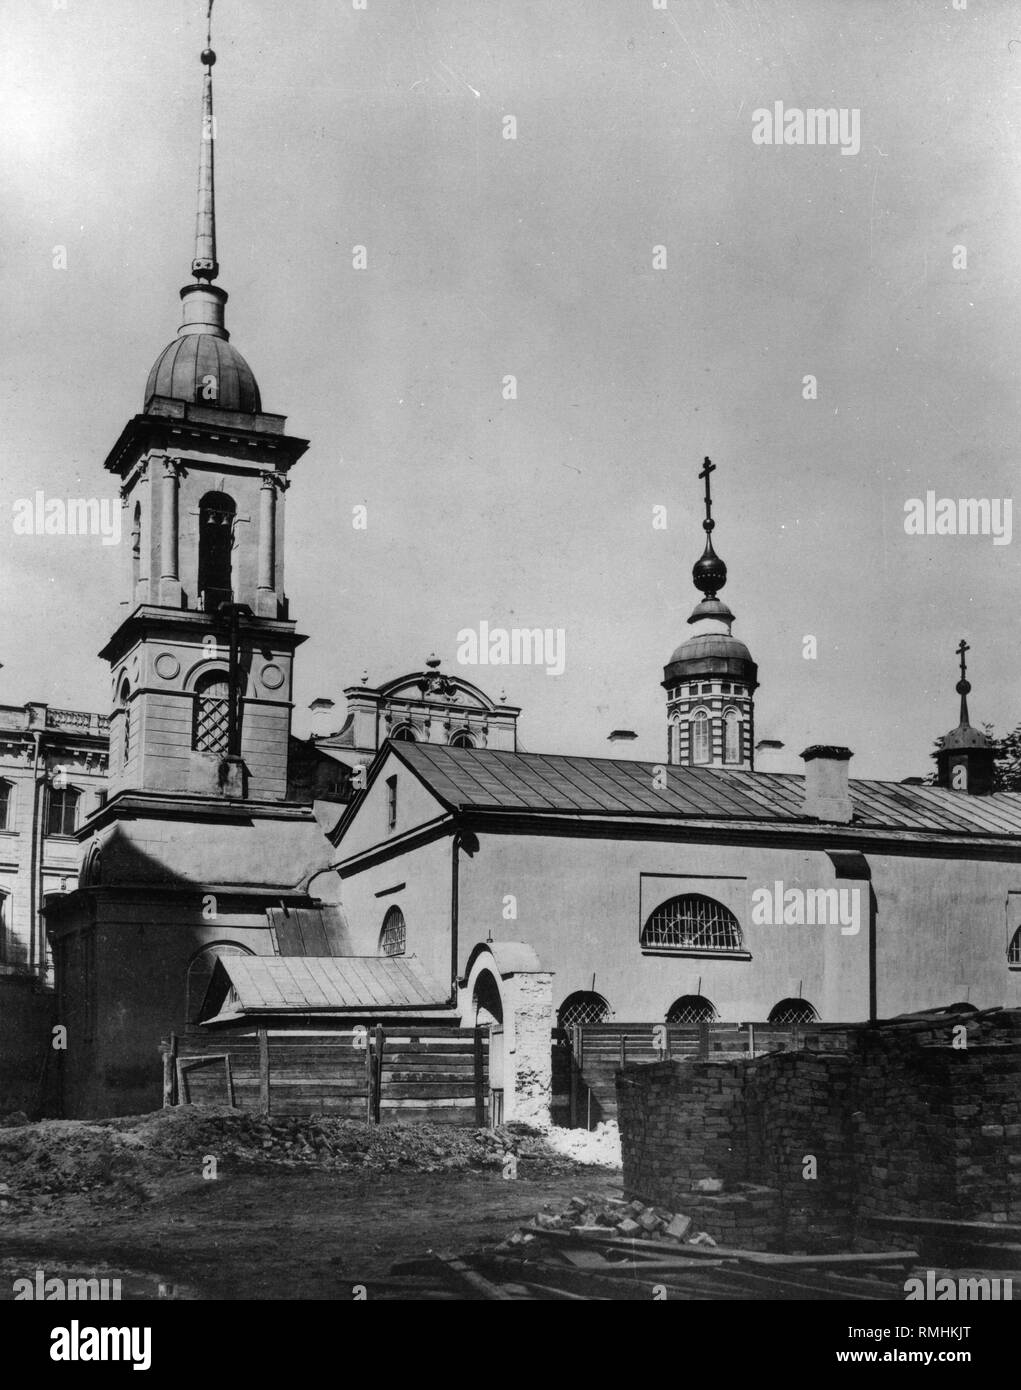 The Church of Holy Martyrs Cosmas und Damian in Moscow. Albumin Photo - Stock Image